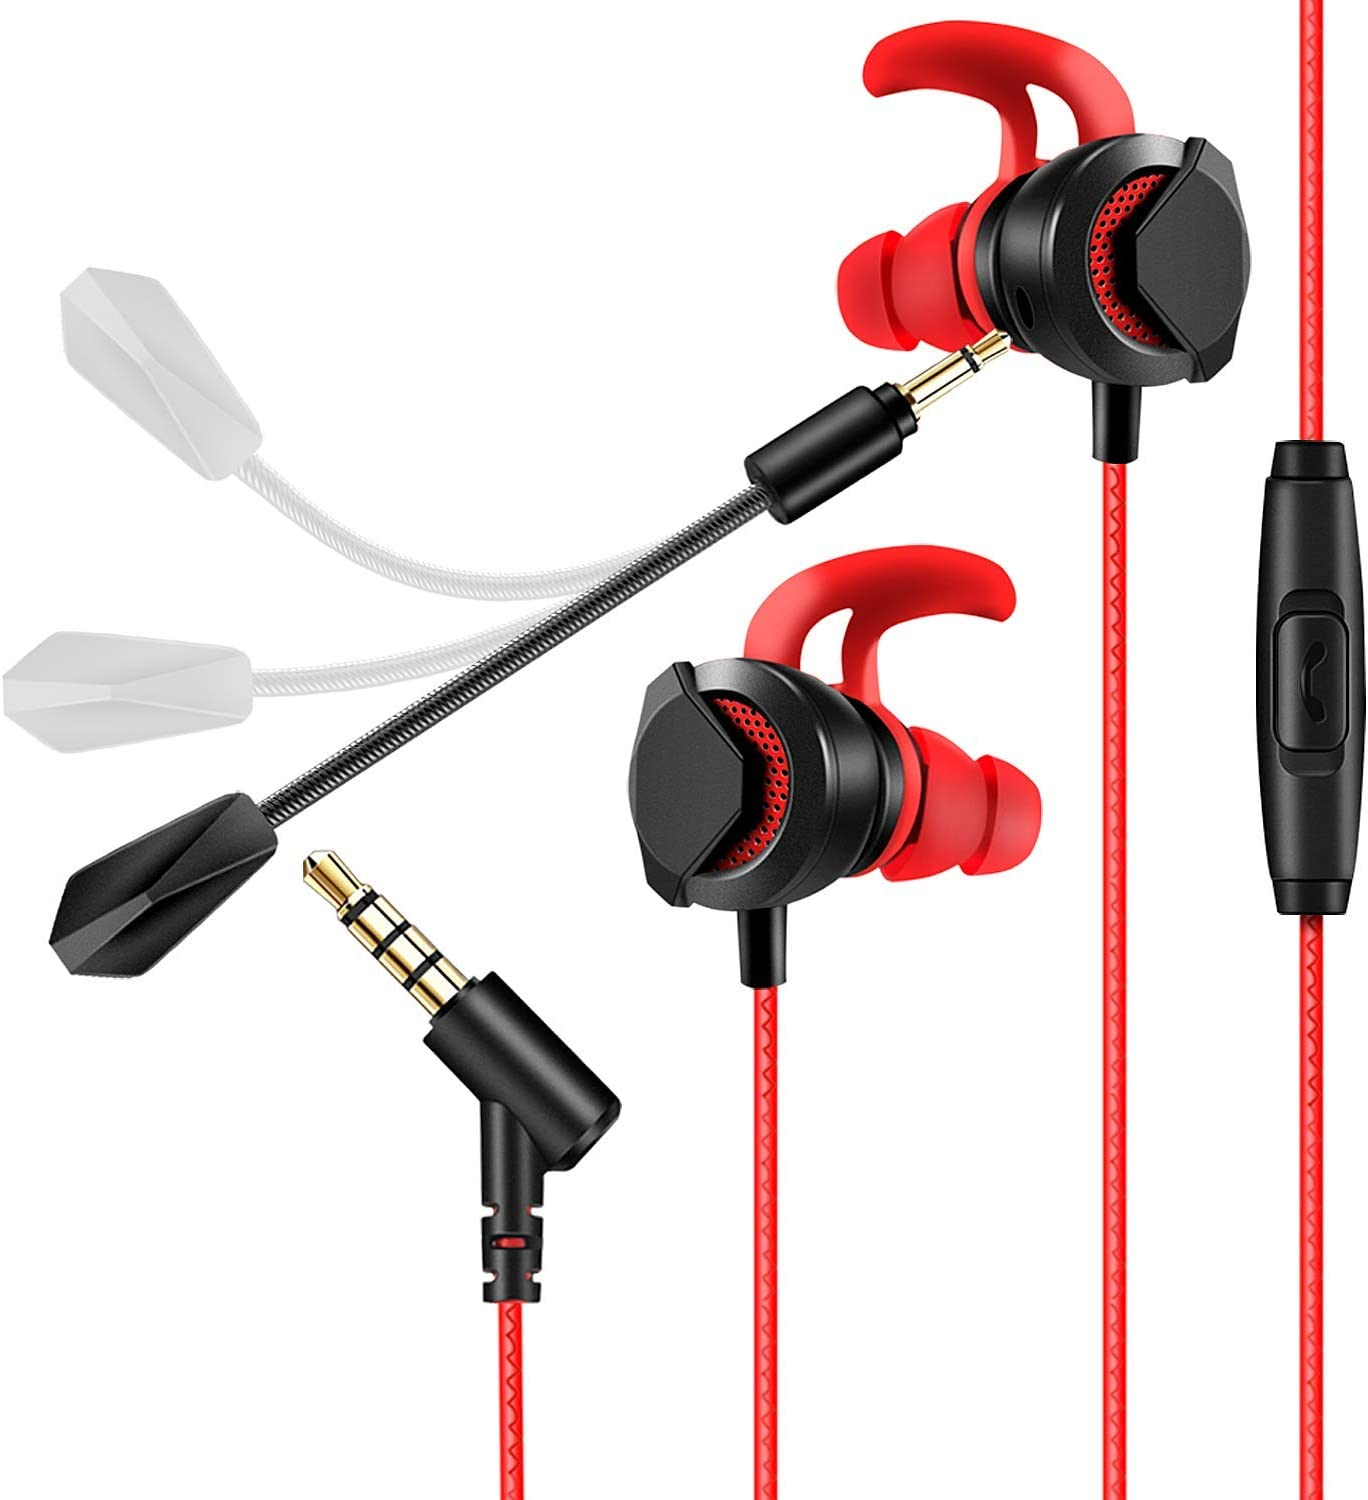 in-Ear Gaming Headphones with Dual Mic, AGPTEK 3.5MM Wired Earbuds Gaming Earphones with 3 Pairs Different Sizes Earbuds for PS4, Xbox, PC, Laptop, Mobile Phone, Red